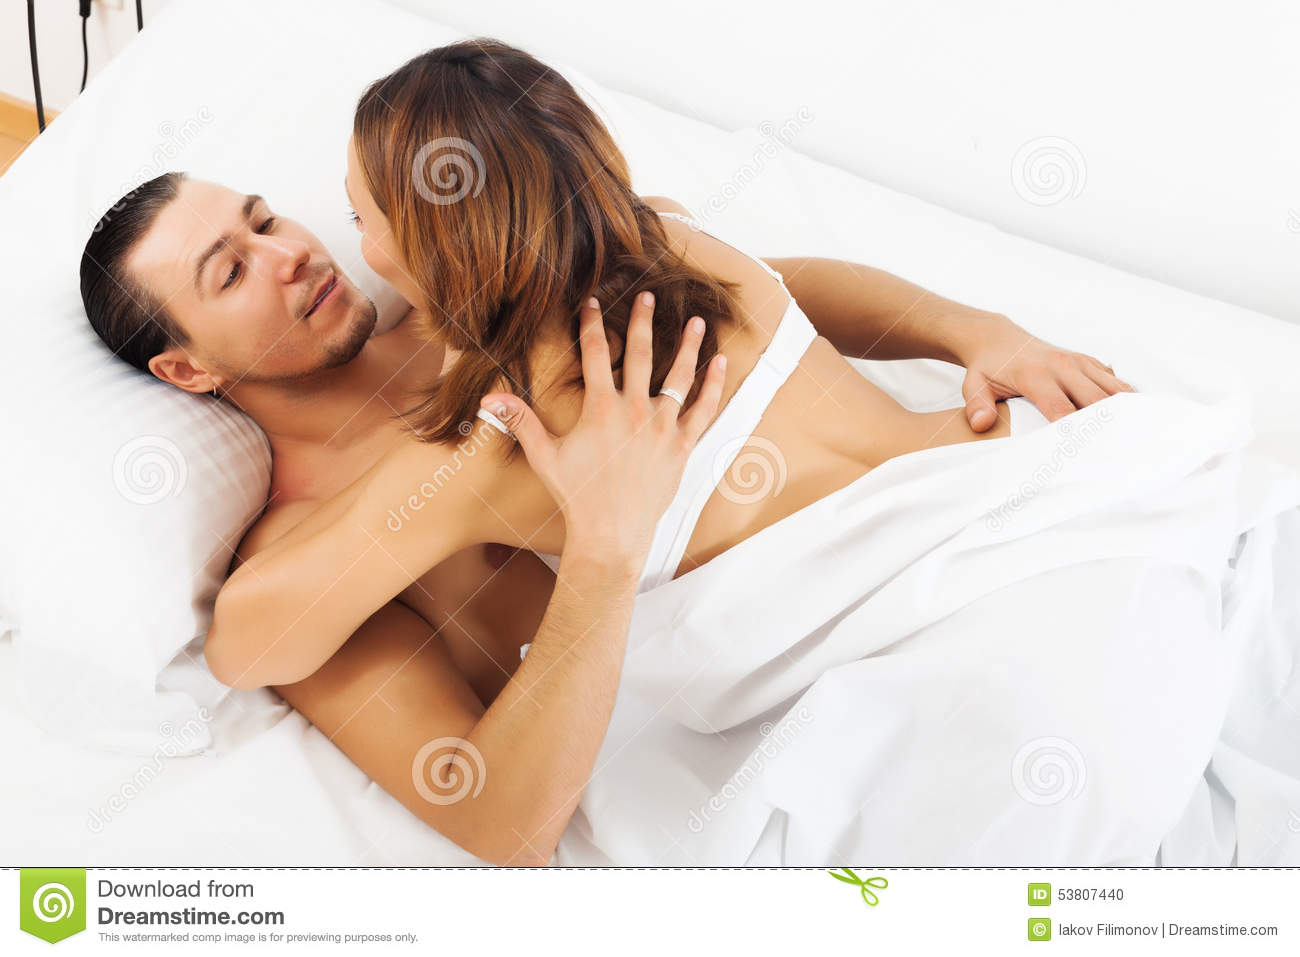 Woman and man having sex